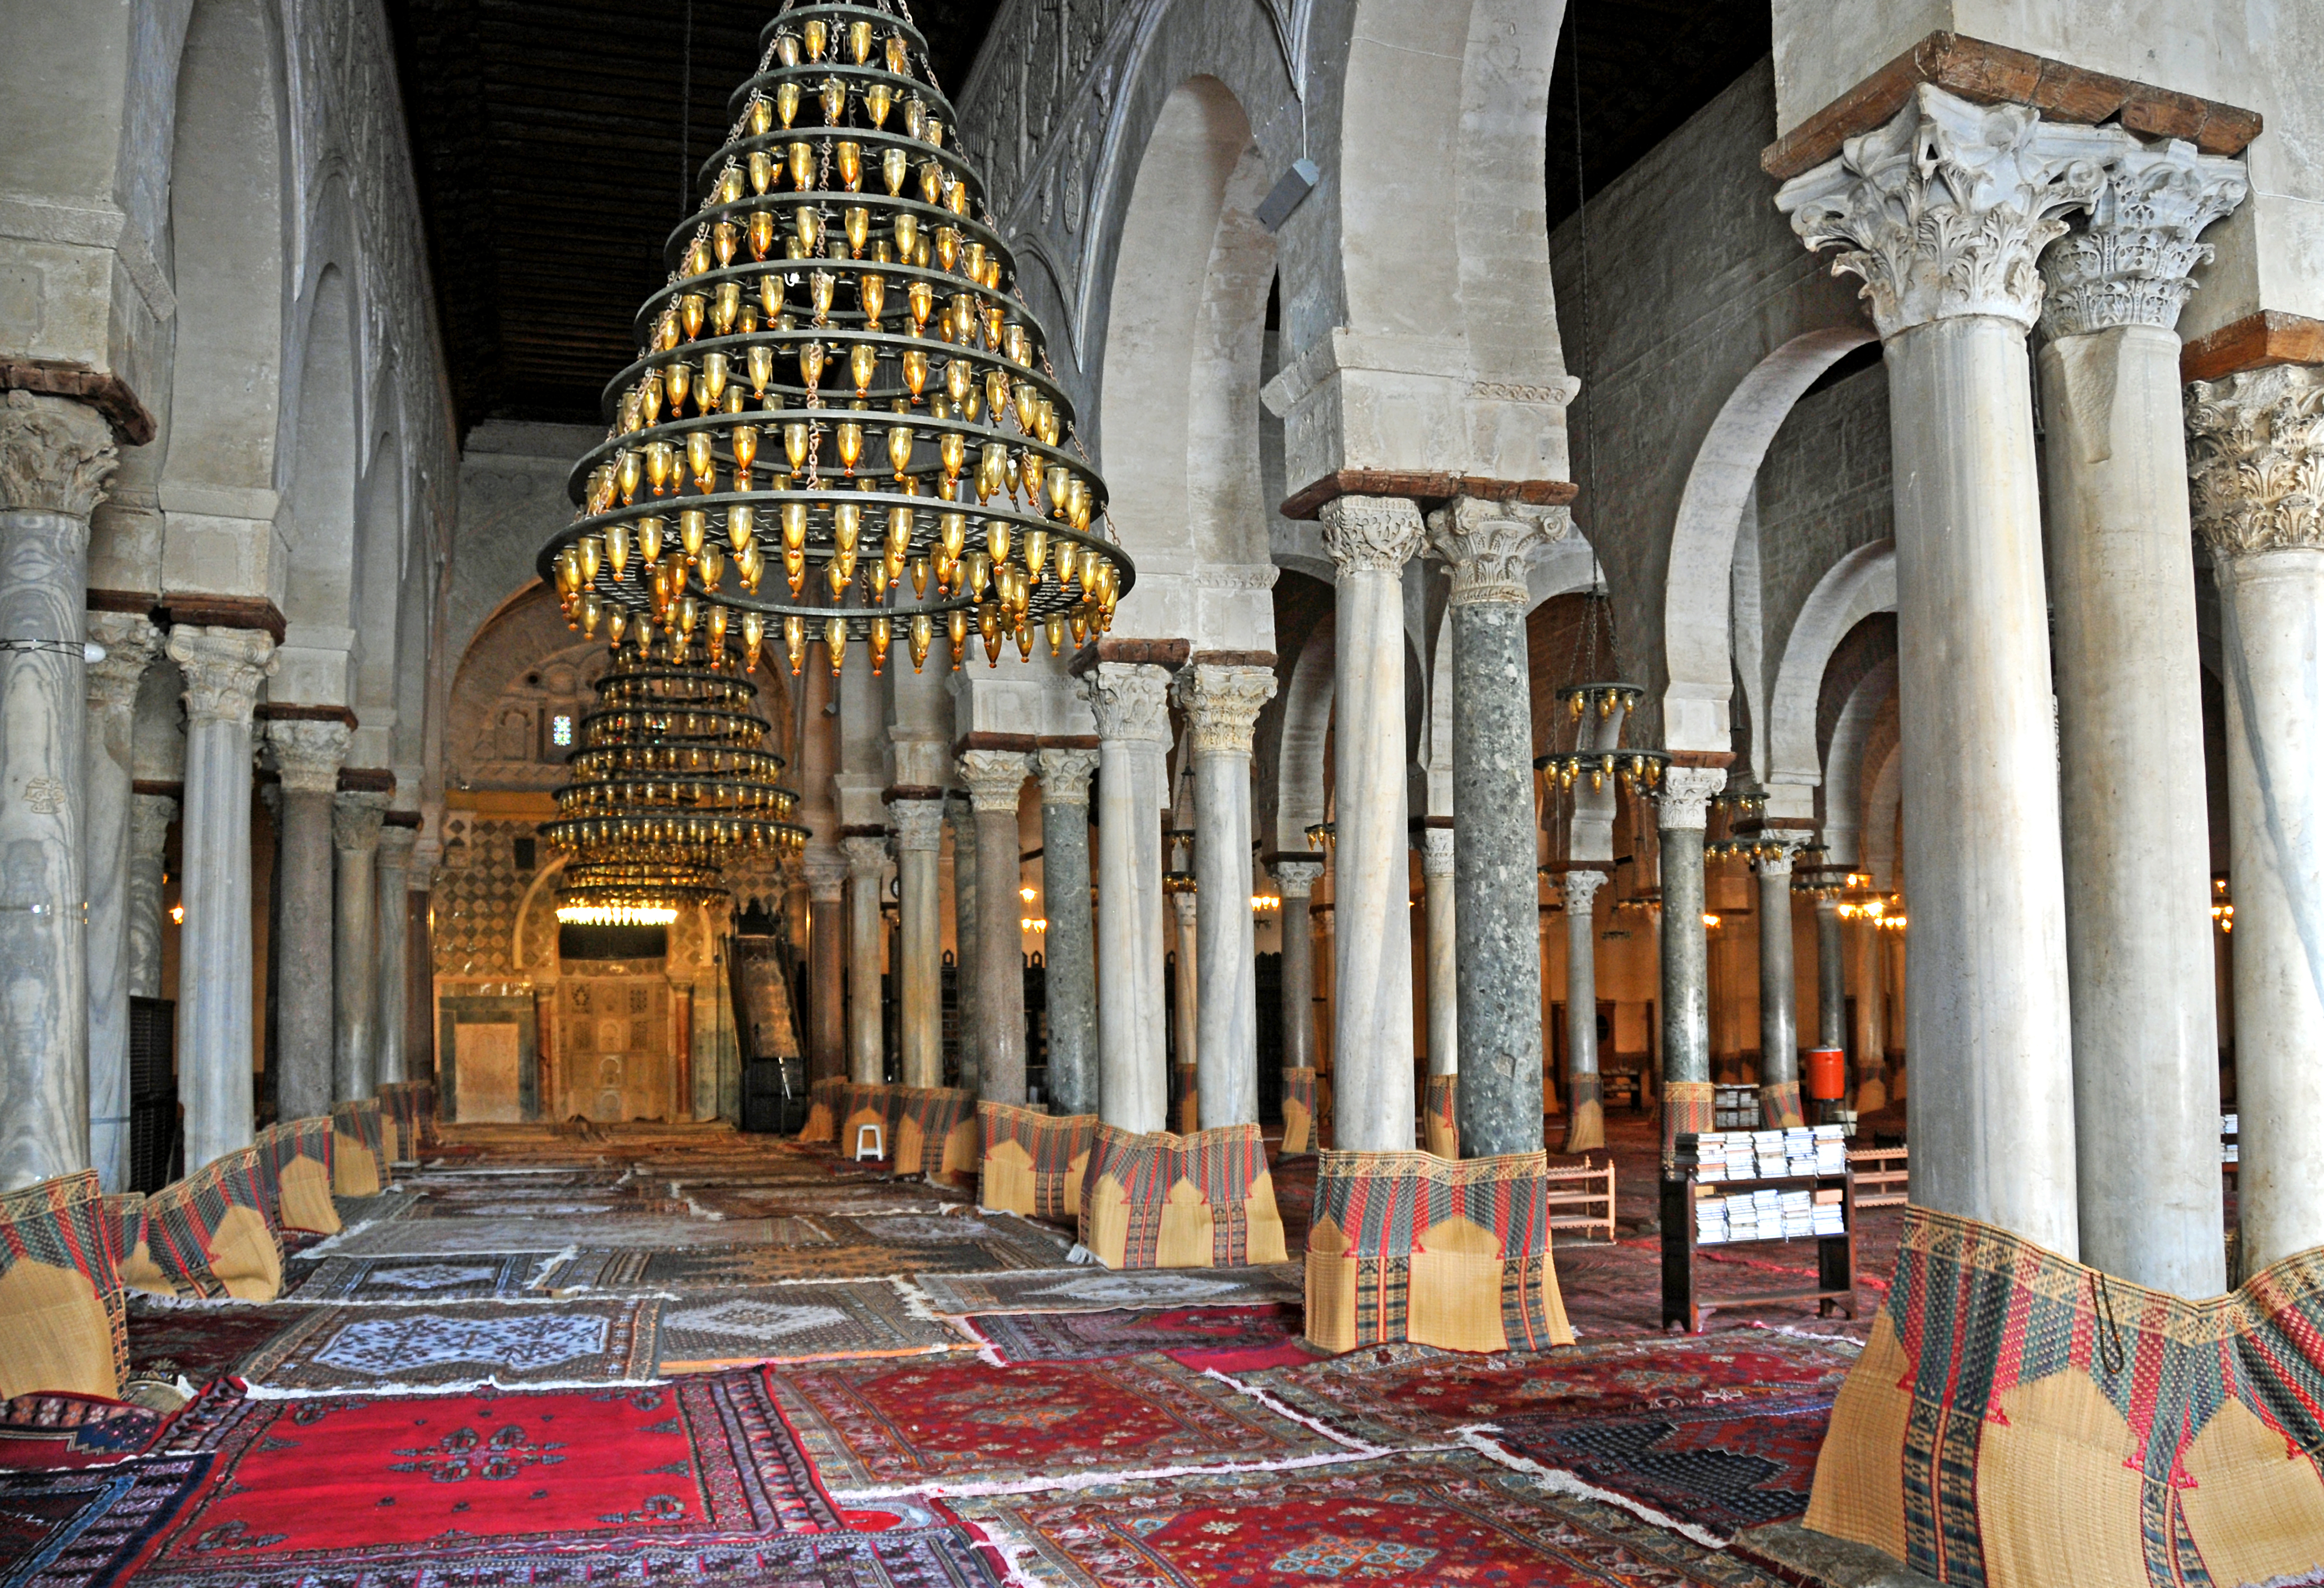 The most beautiful mosques to visit: Prayer Hall at the Great Mosque of Kairouan, Tunisia.